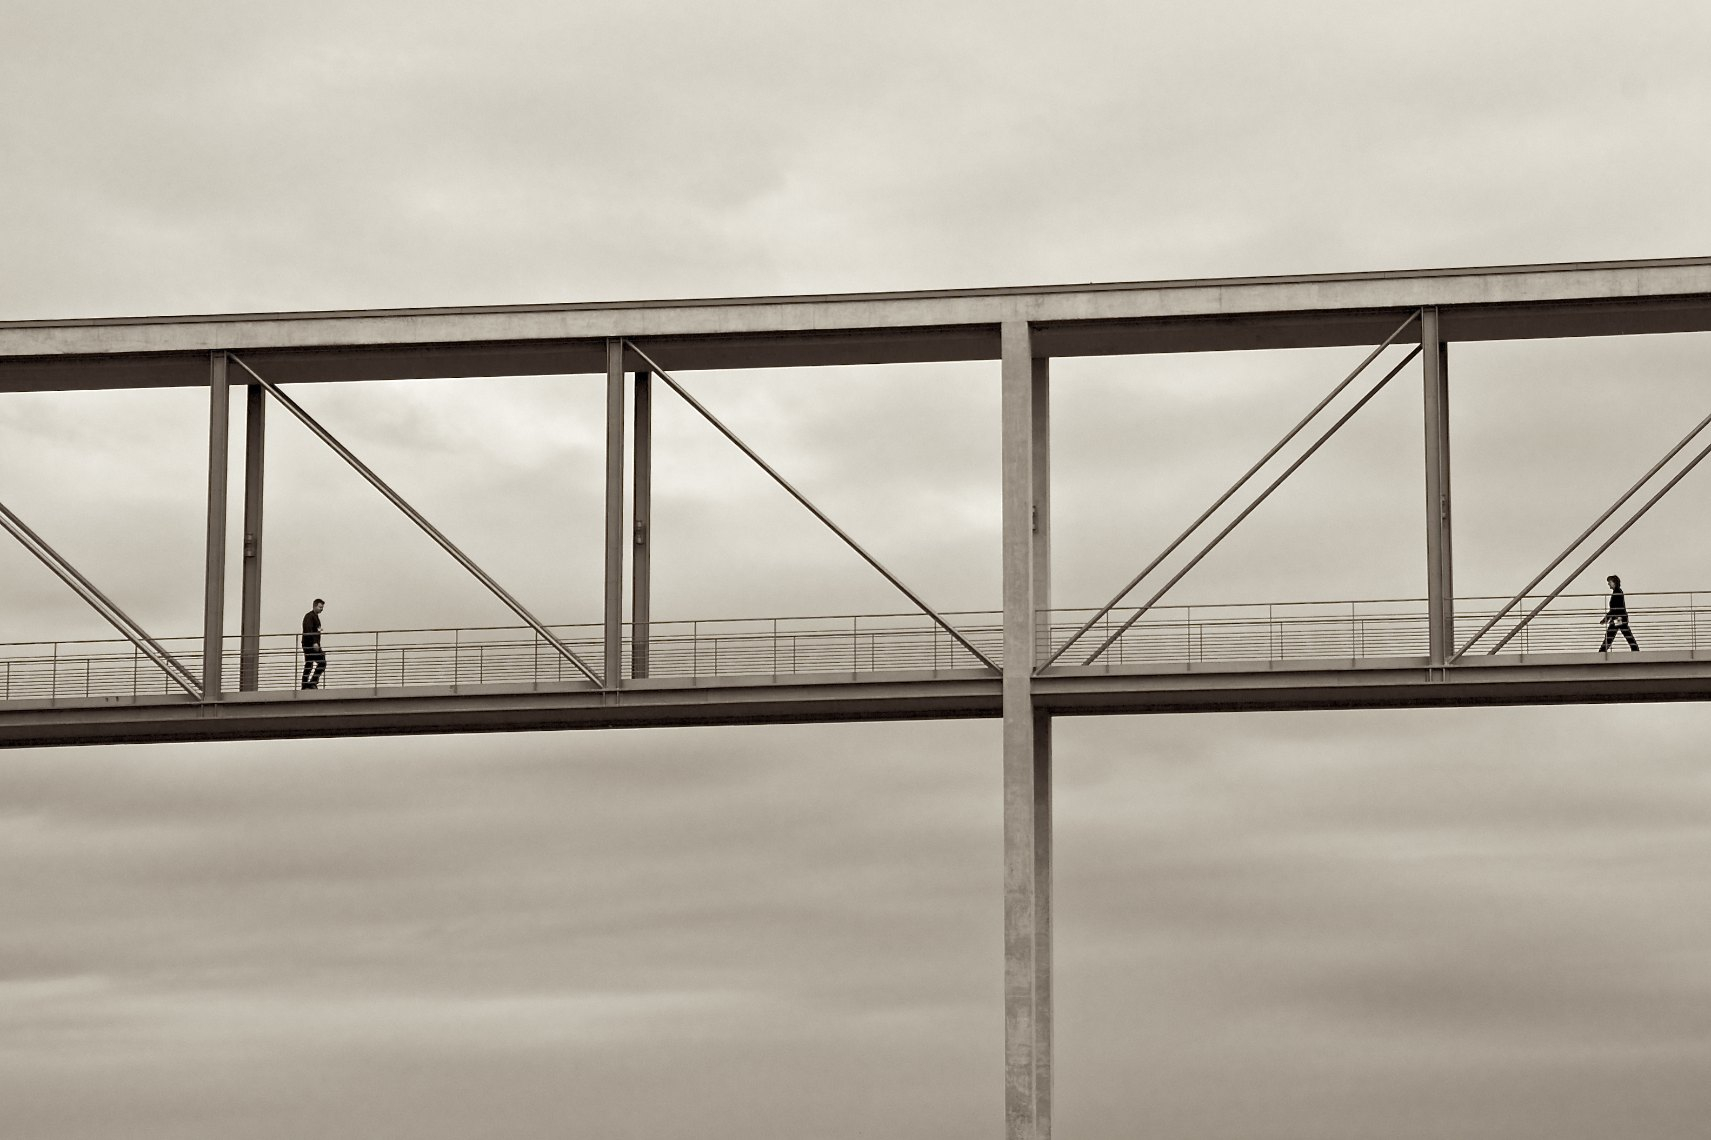 Berlin bridge pedestrians